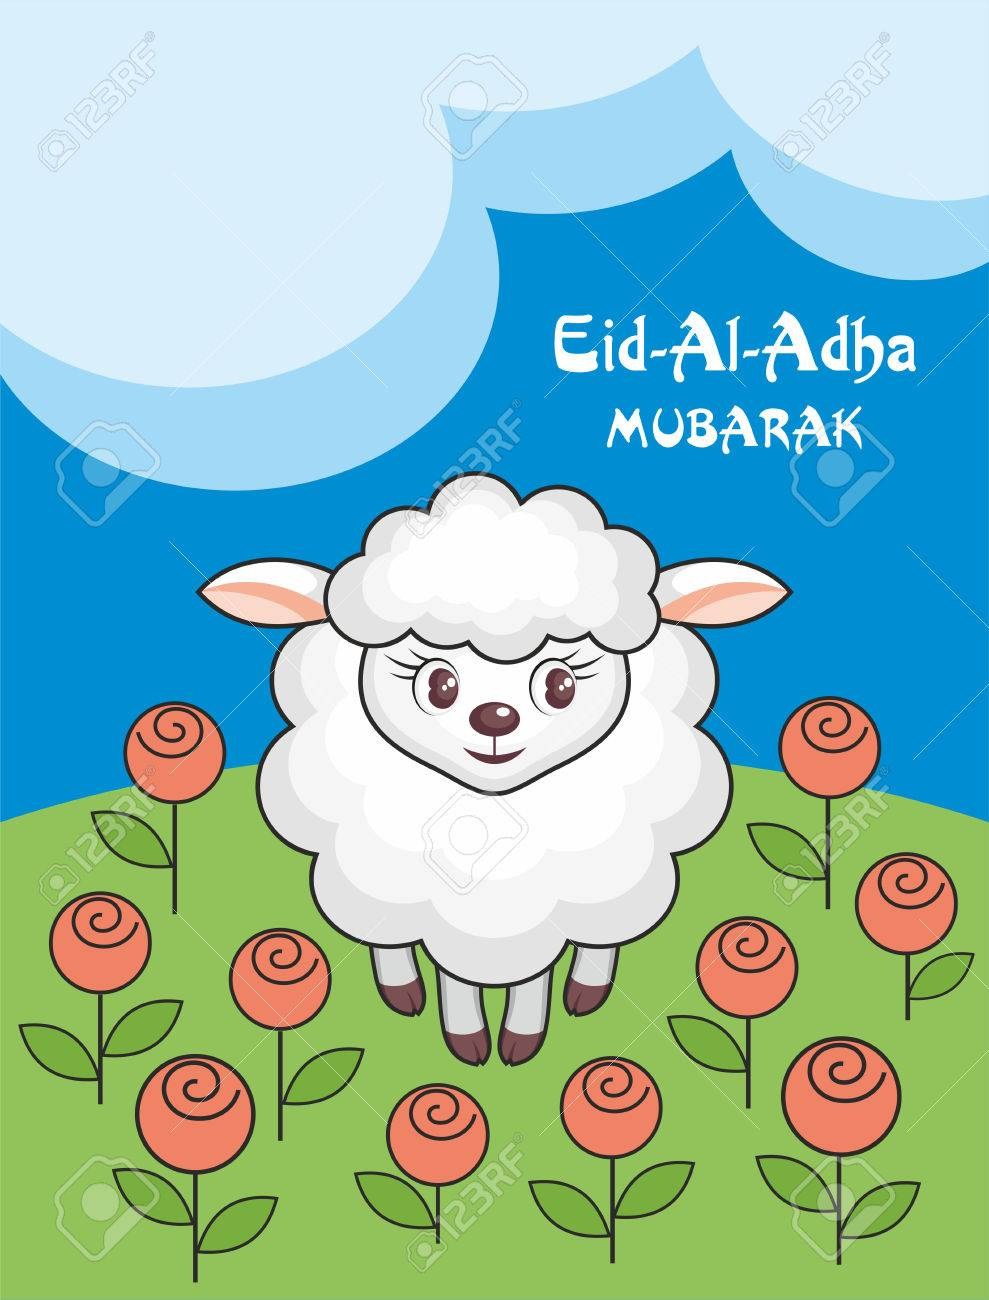 Eid Al Adha Greeting Card With The Image Of The Sacrificial Lamb